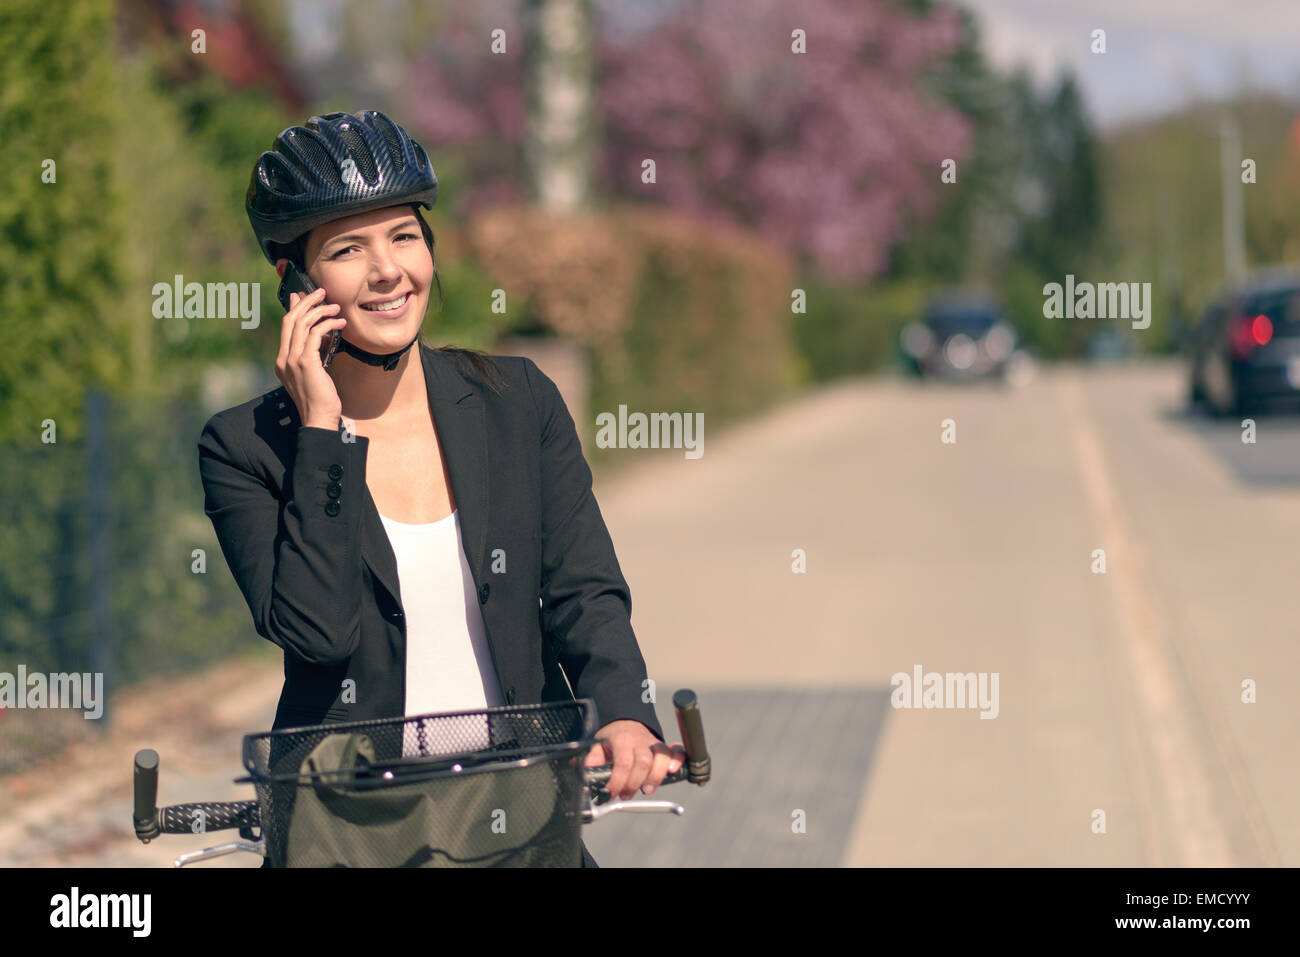 Stylish friendly young businesswoman riding to work pausing to answer a call on her mobile phone standing supporting - Stock Image